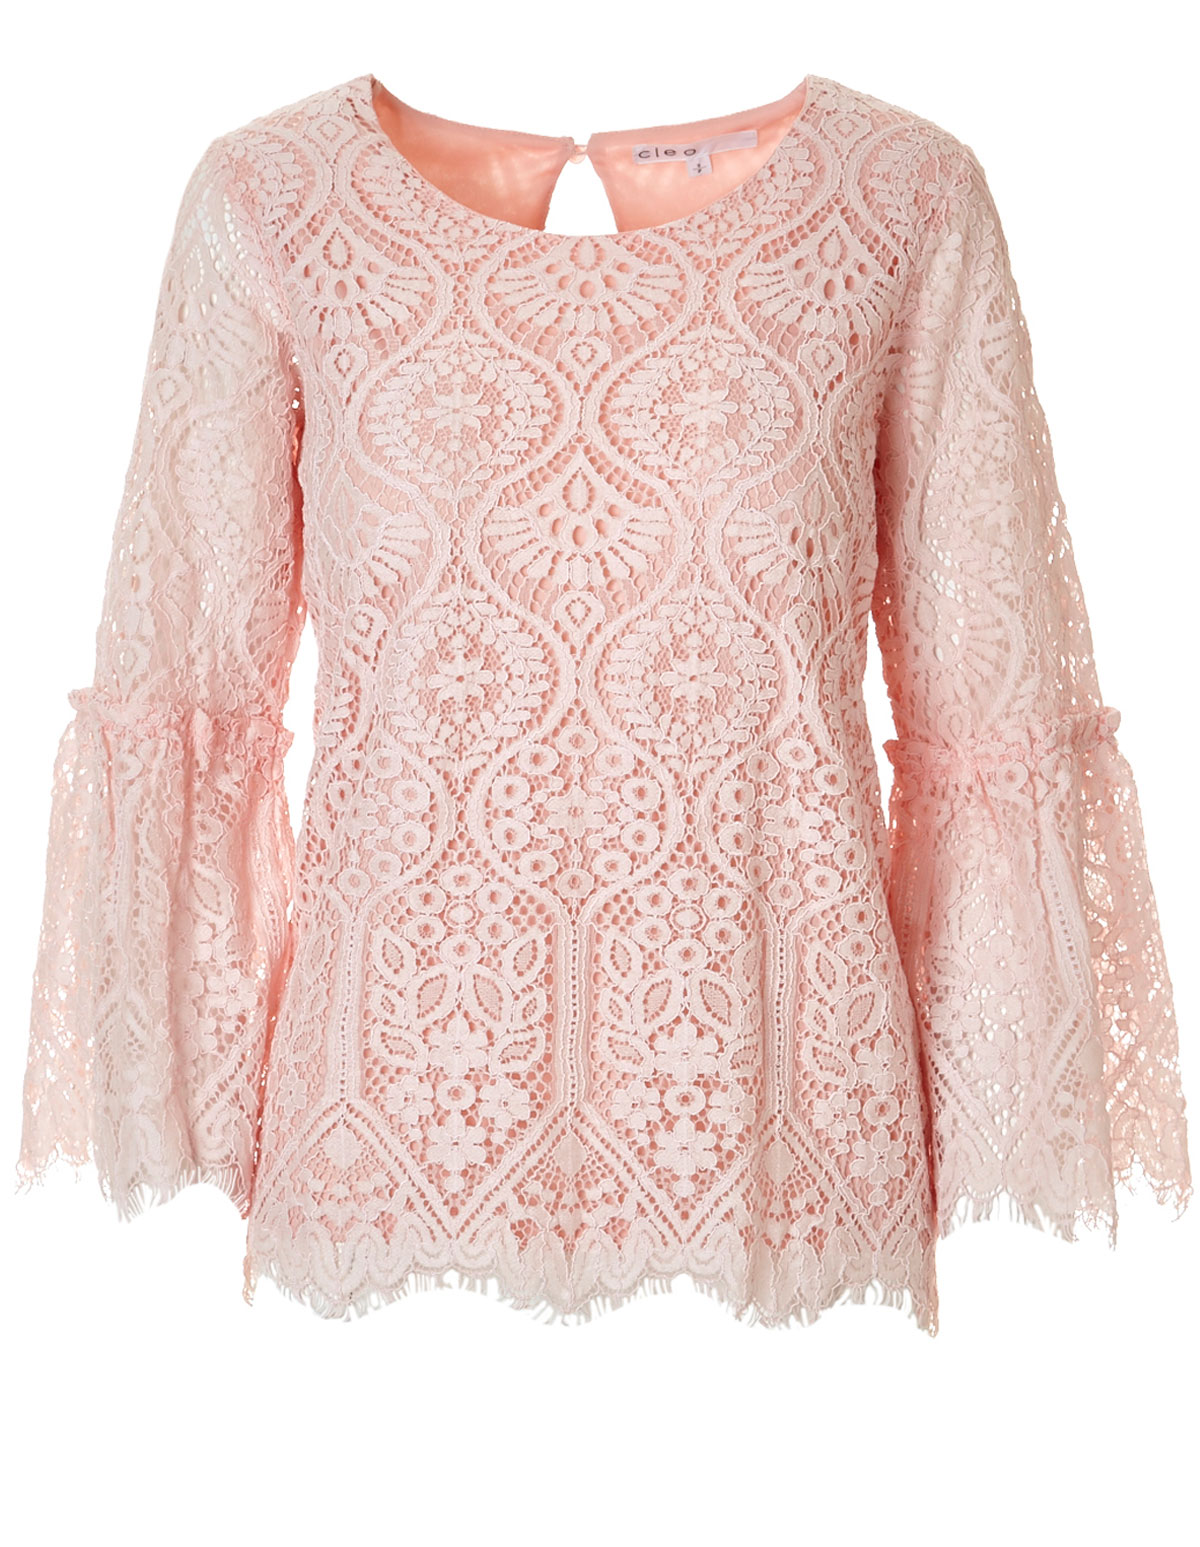 The Top 10 Fashion Trends Of 2012: Seashell Pink Lace Top